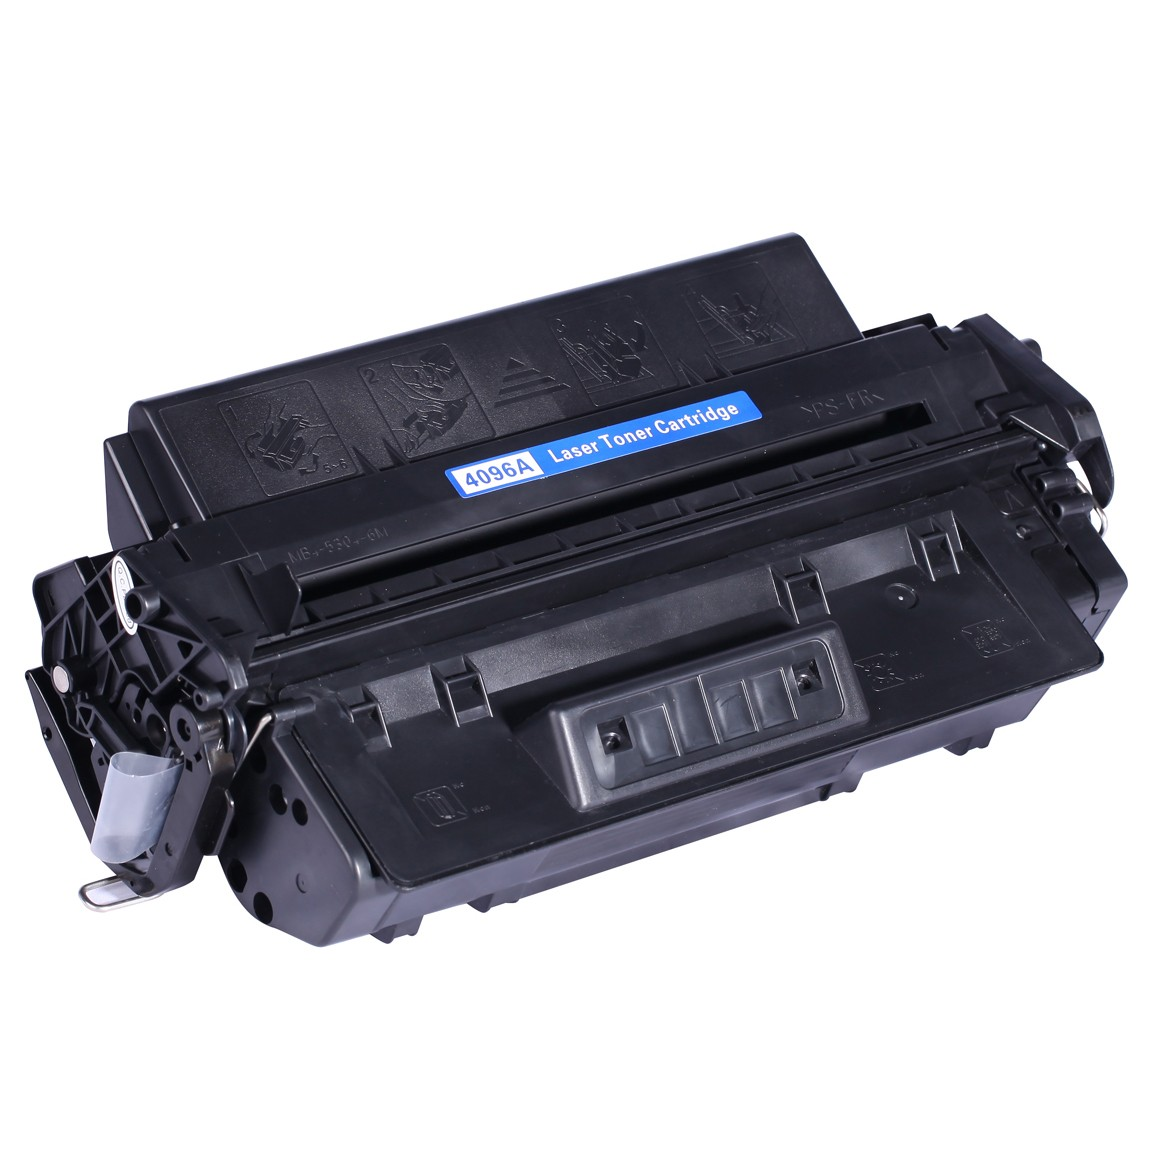 Image of   HP 96A (C4096A) Lasertoner, sort, kompatibel (5000 sider)